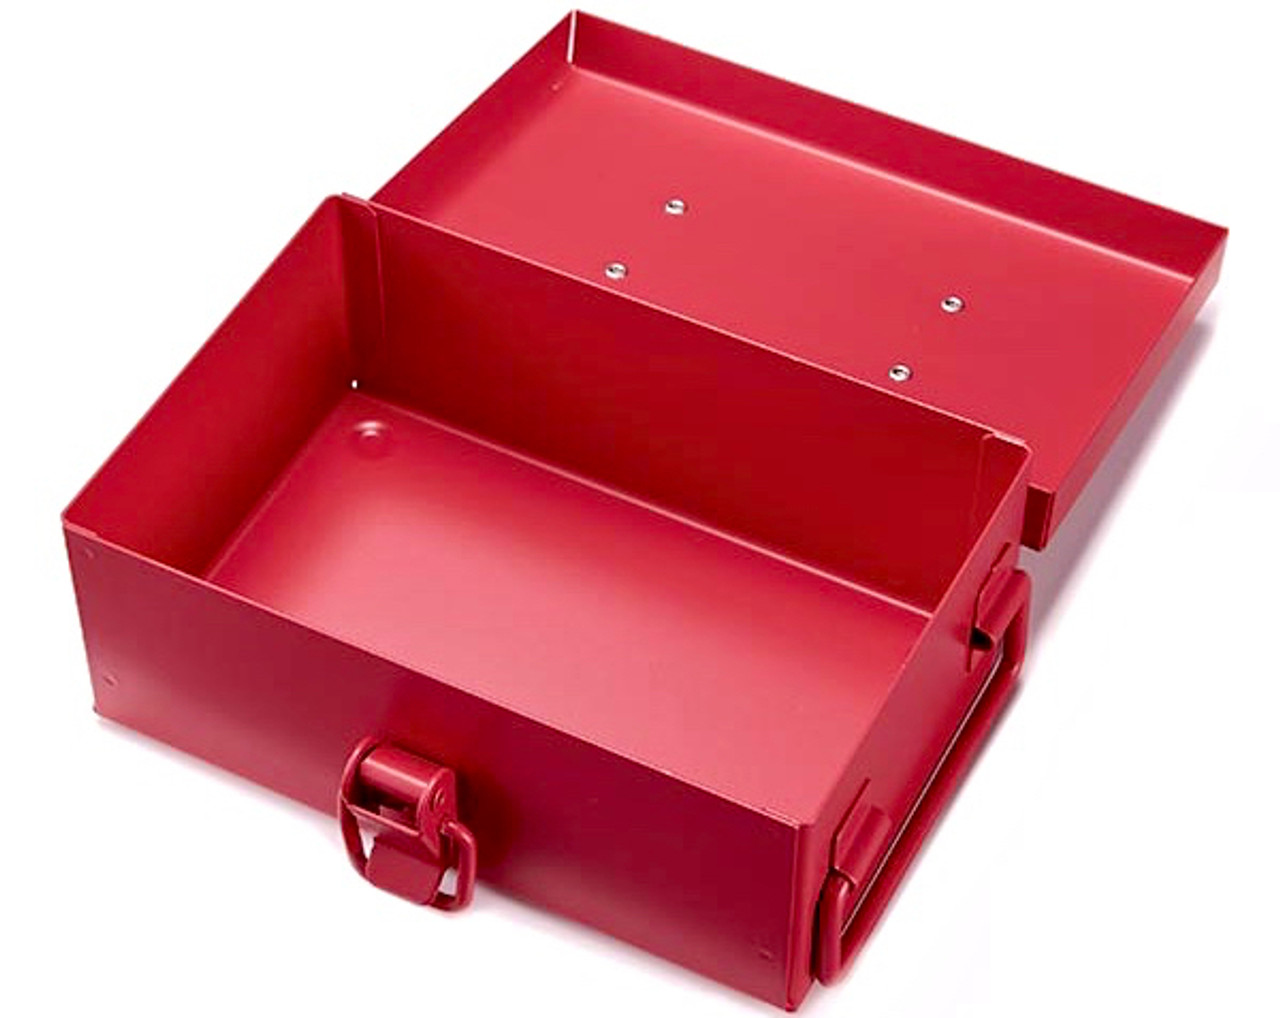 STI Steel Storage Box Small STSG18100220 Open at AVOJDM.com